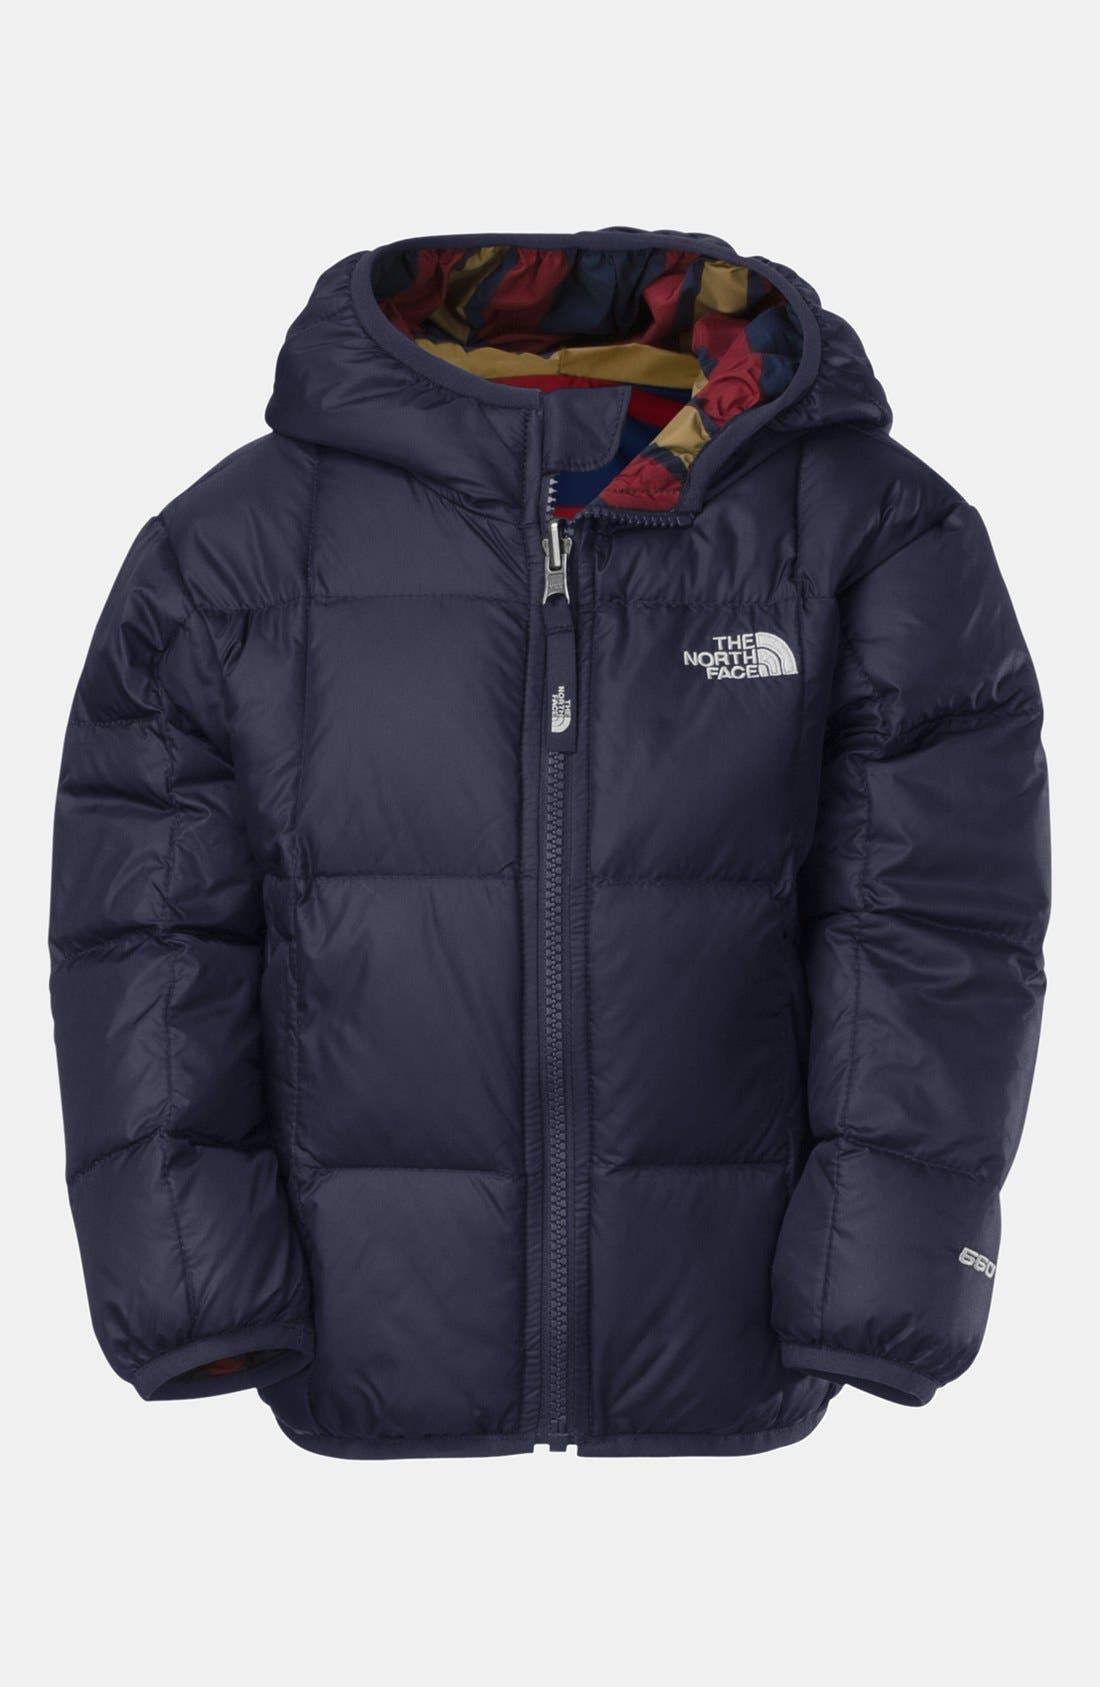 Alternate Image 1 Selected - The North Face 'Moondoggy' Reversible Quilted Down Jacket (Toddler Boys)